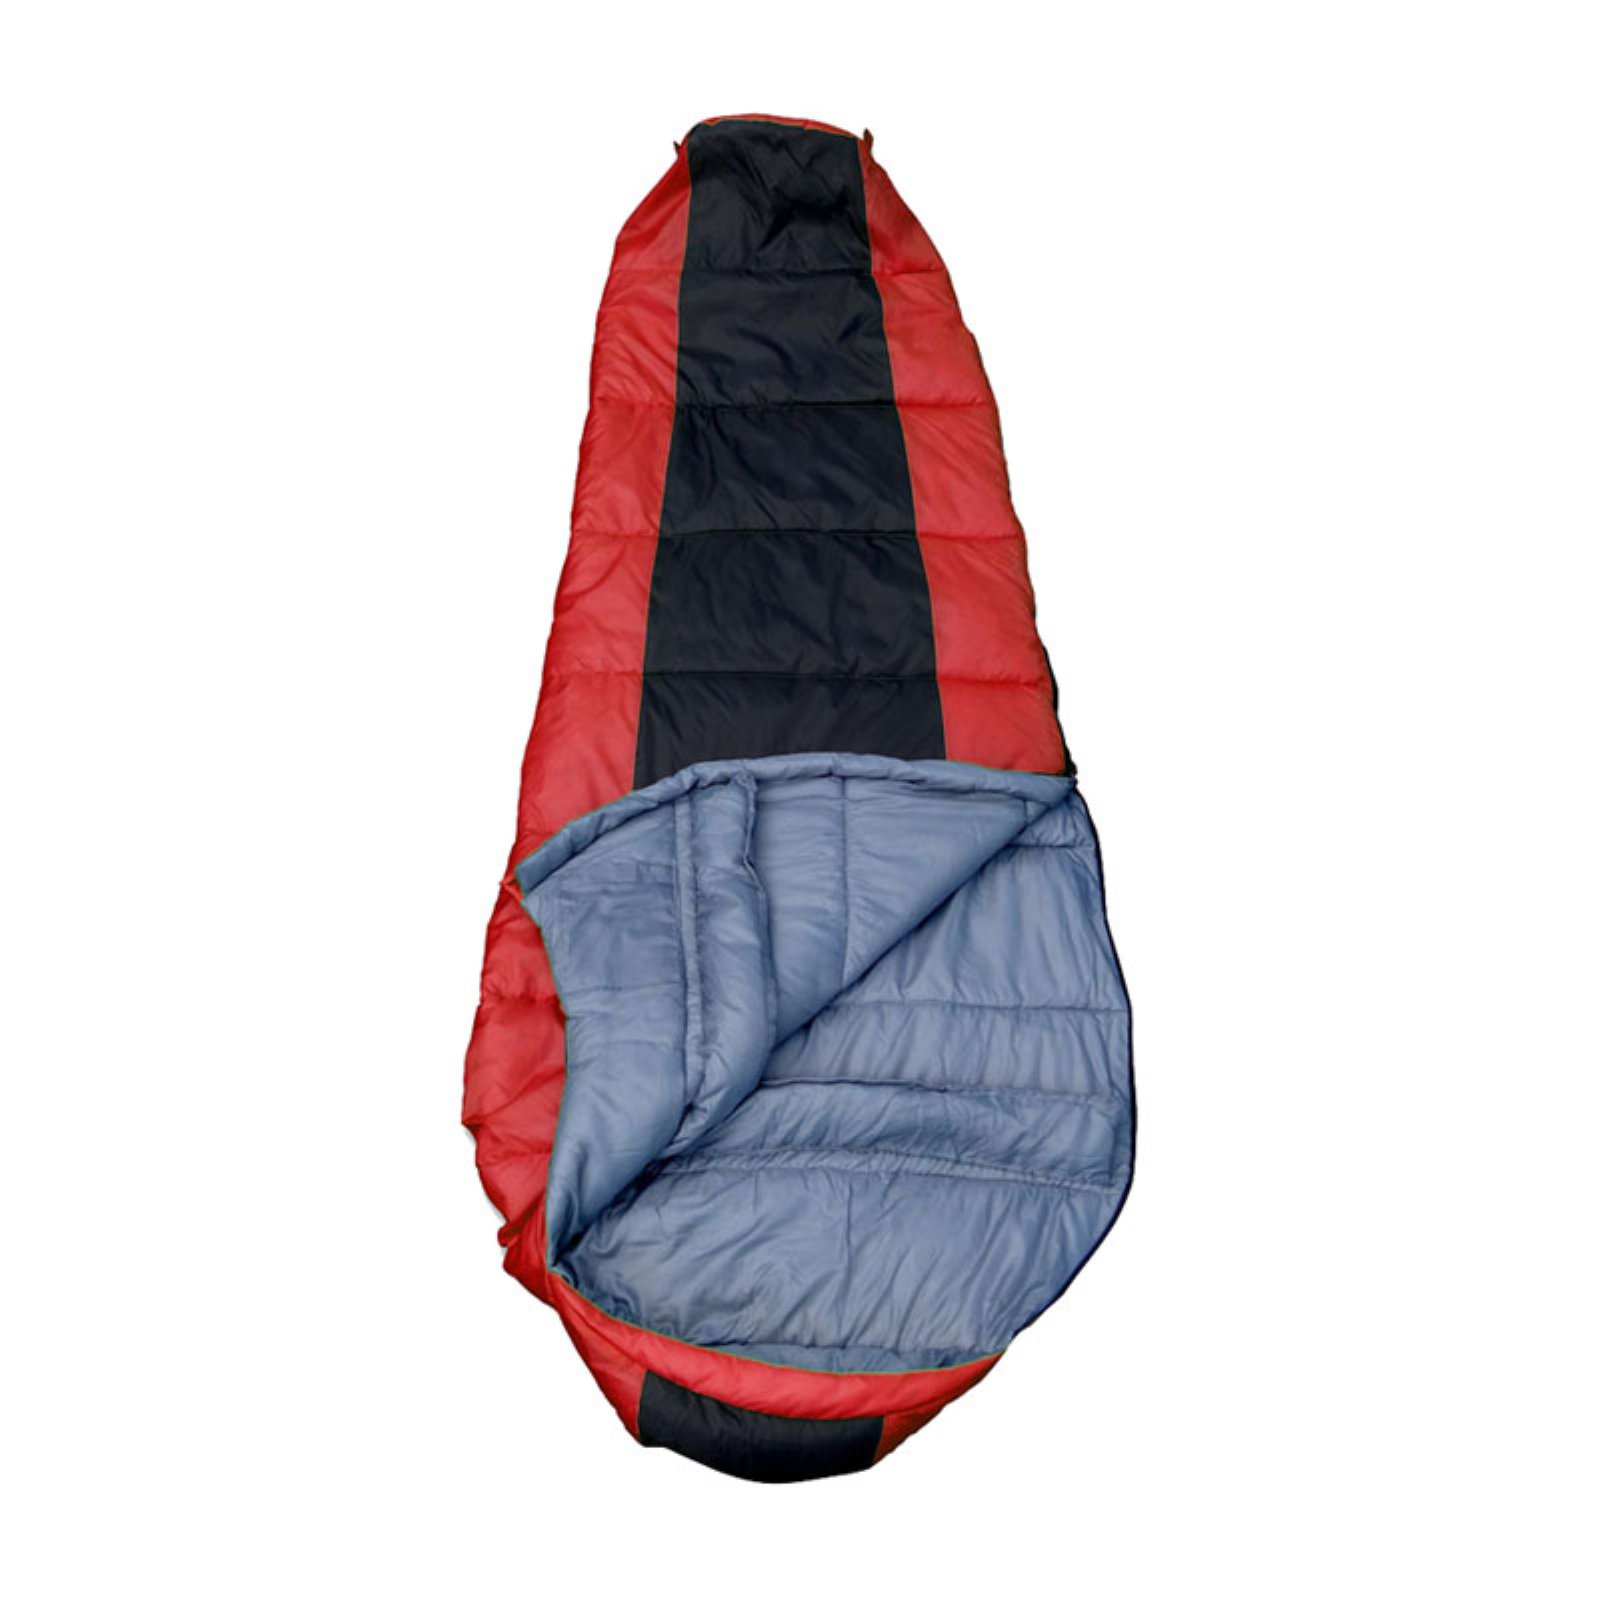 GigaTent Forrest Mummy 35-Degree Adult Sleeping Bag